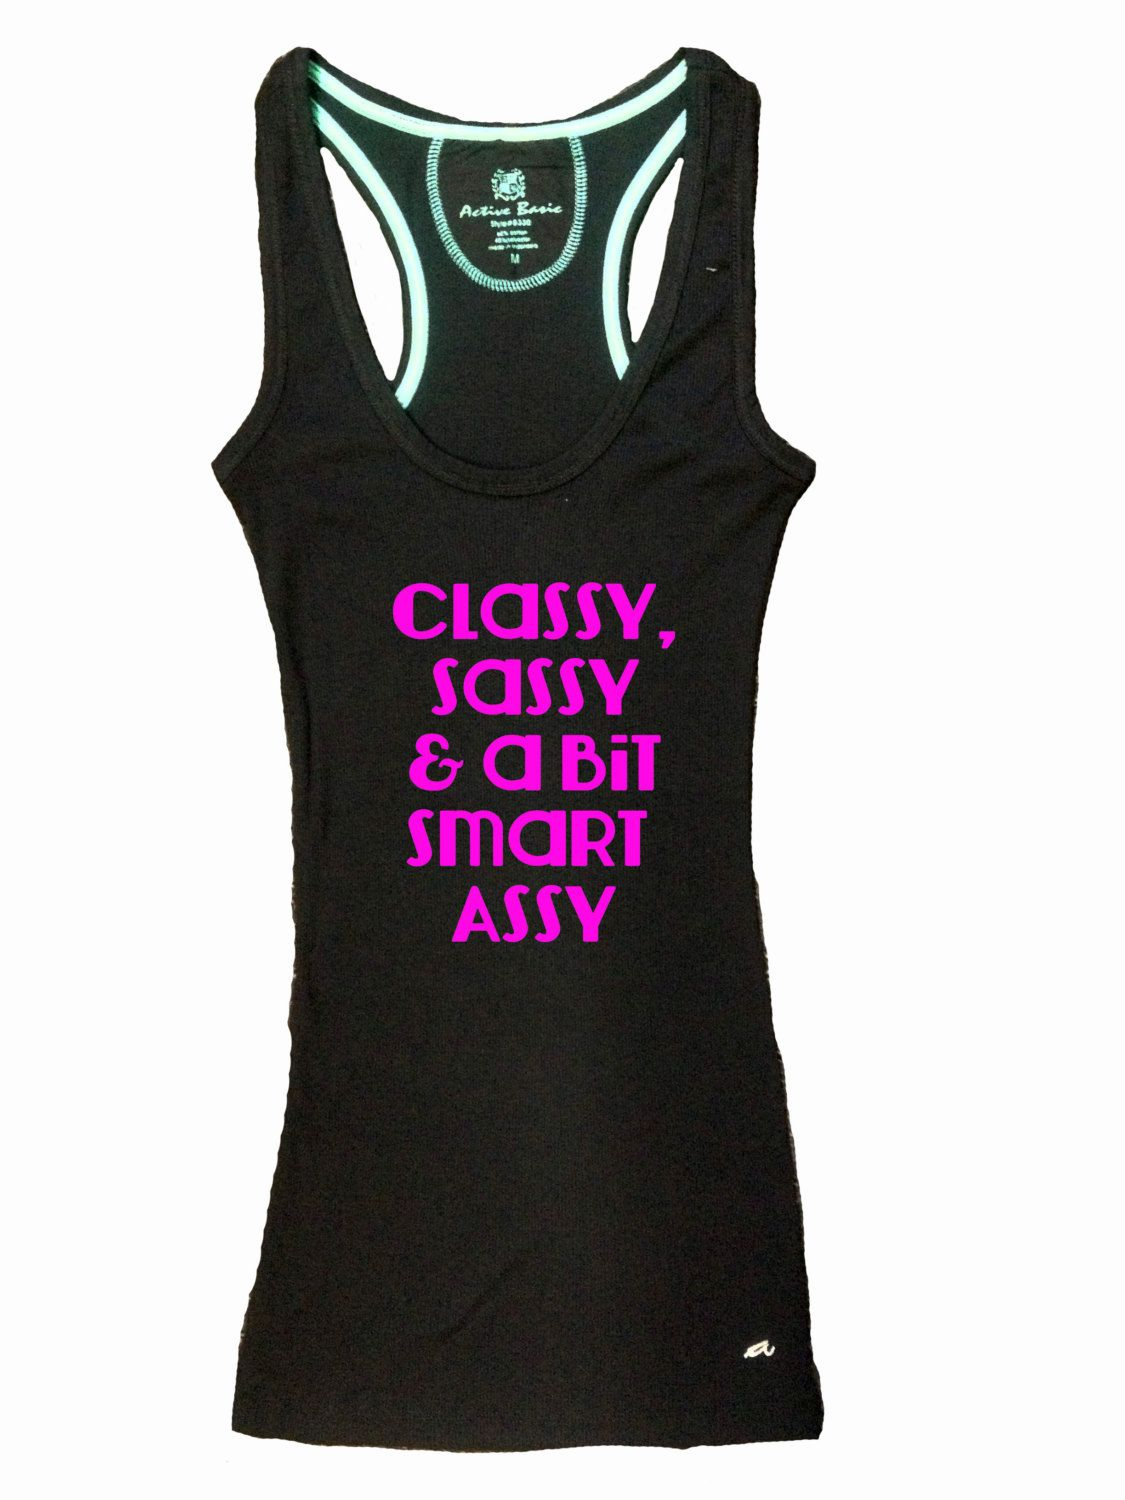 Classy Sassy and a Bit Smart Assy Gym Tank by sunsetsigndesigns, $20.00